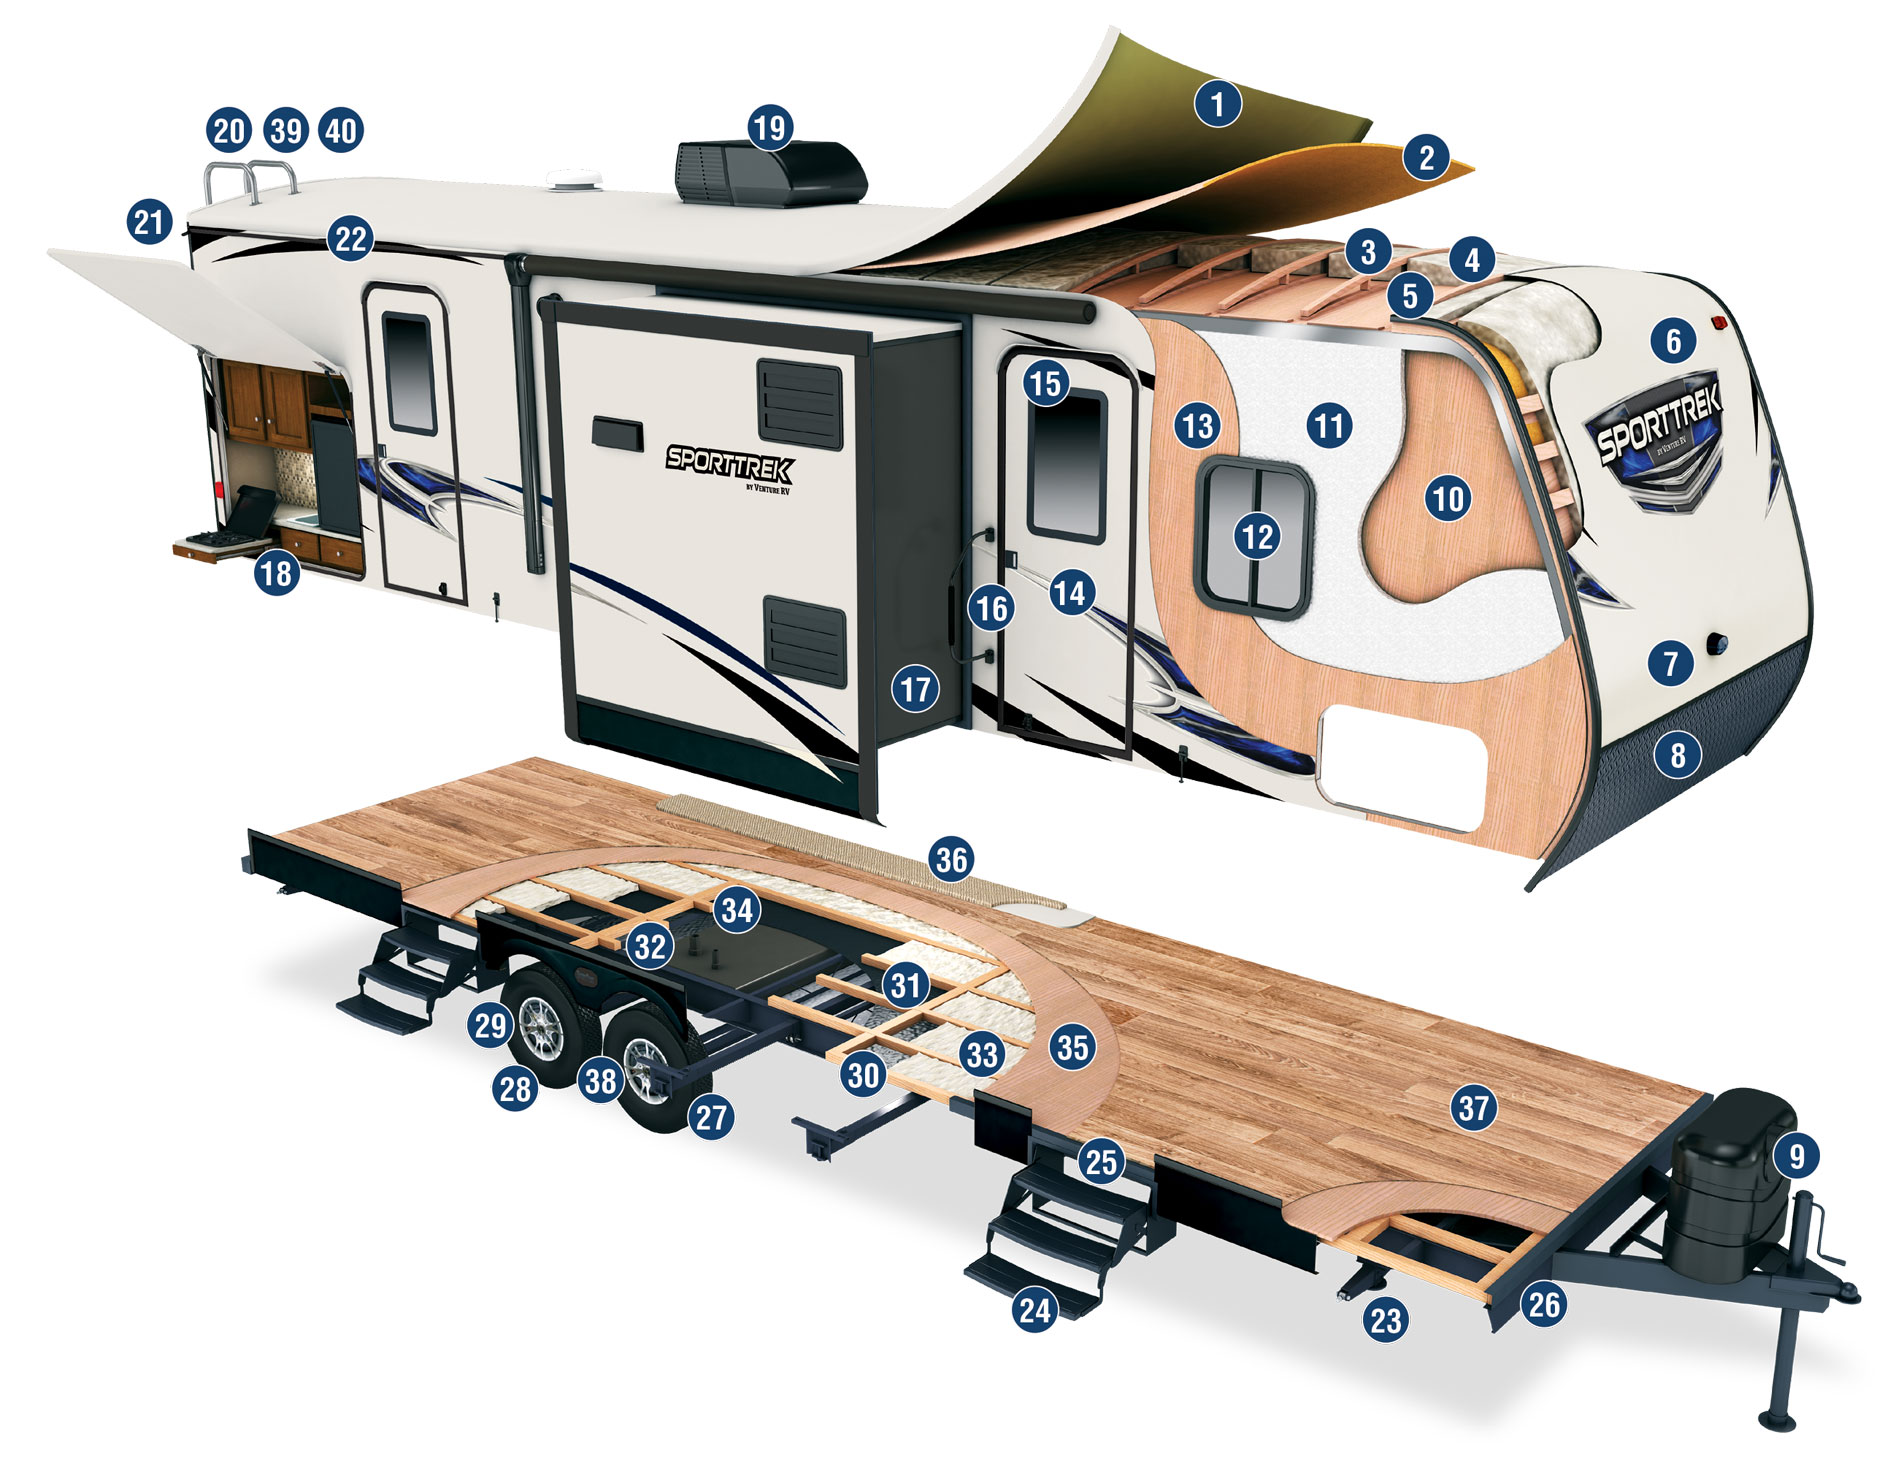 Sporttrek Construction Venture Rv